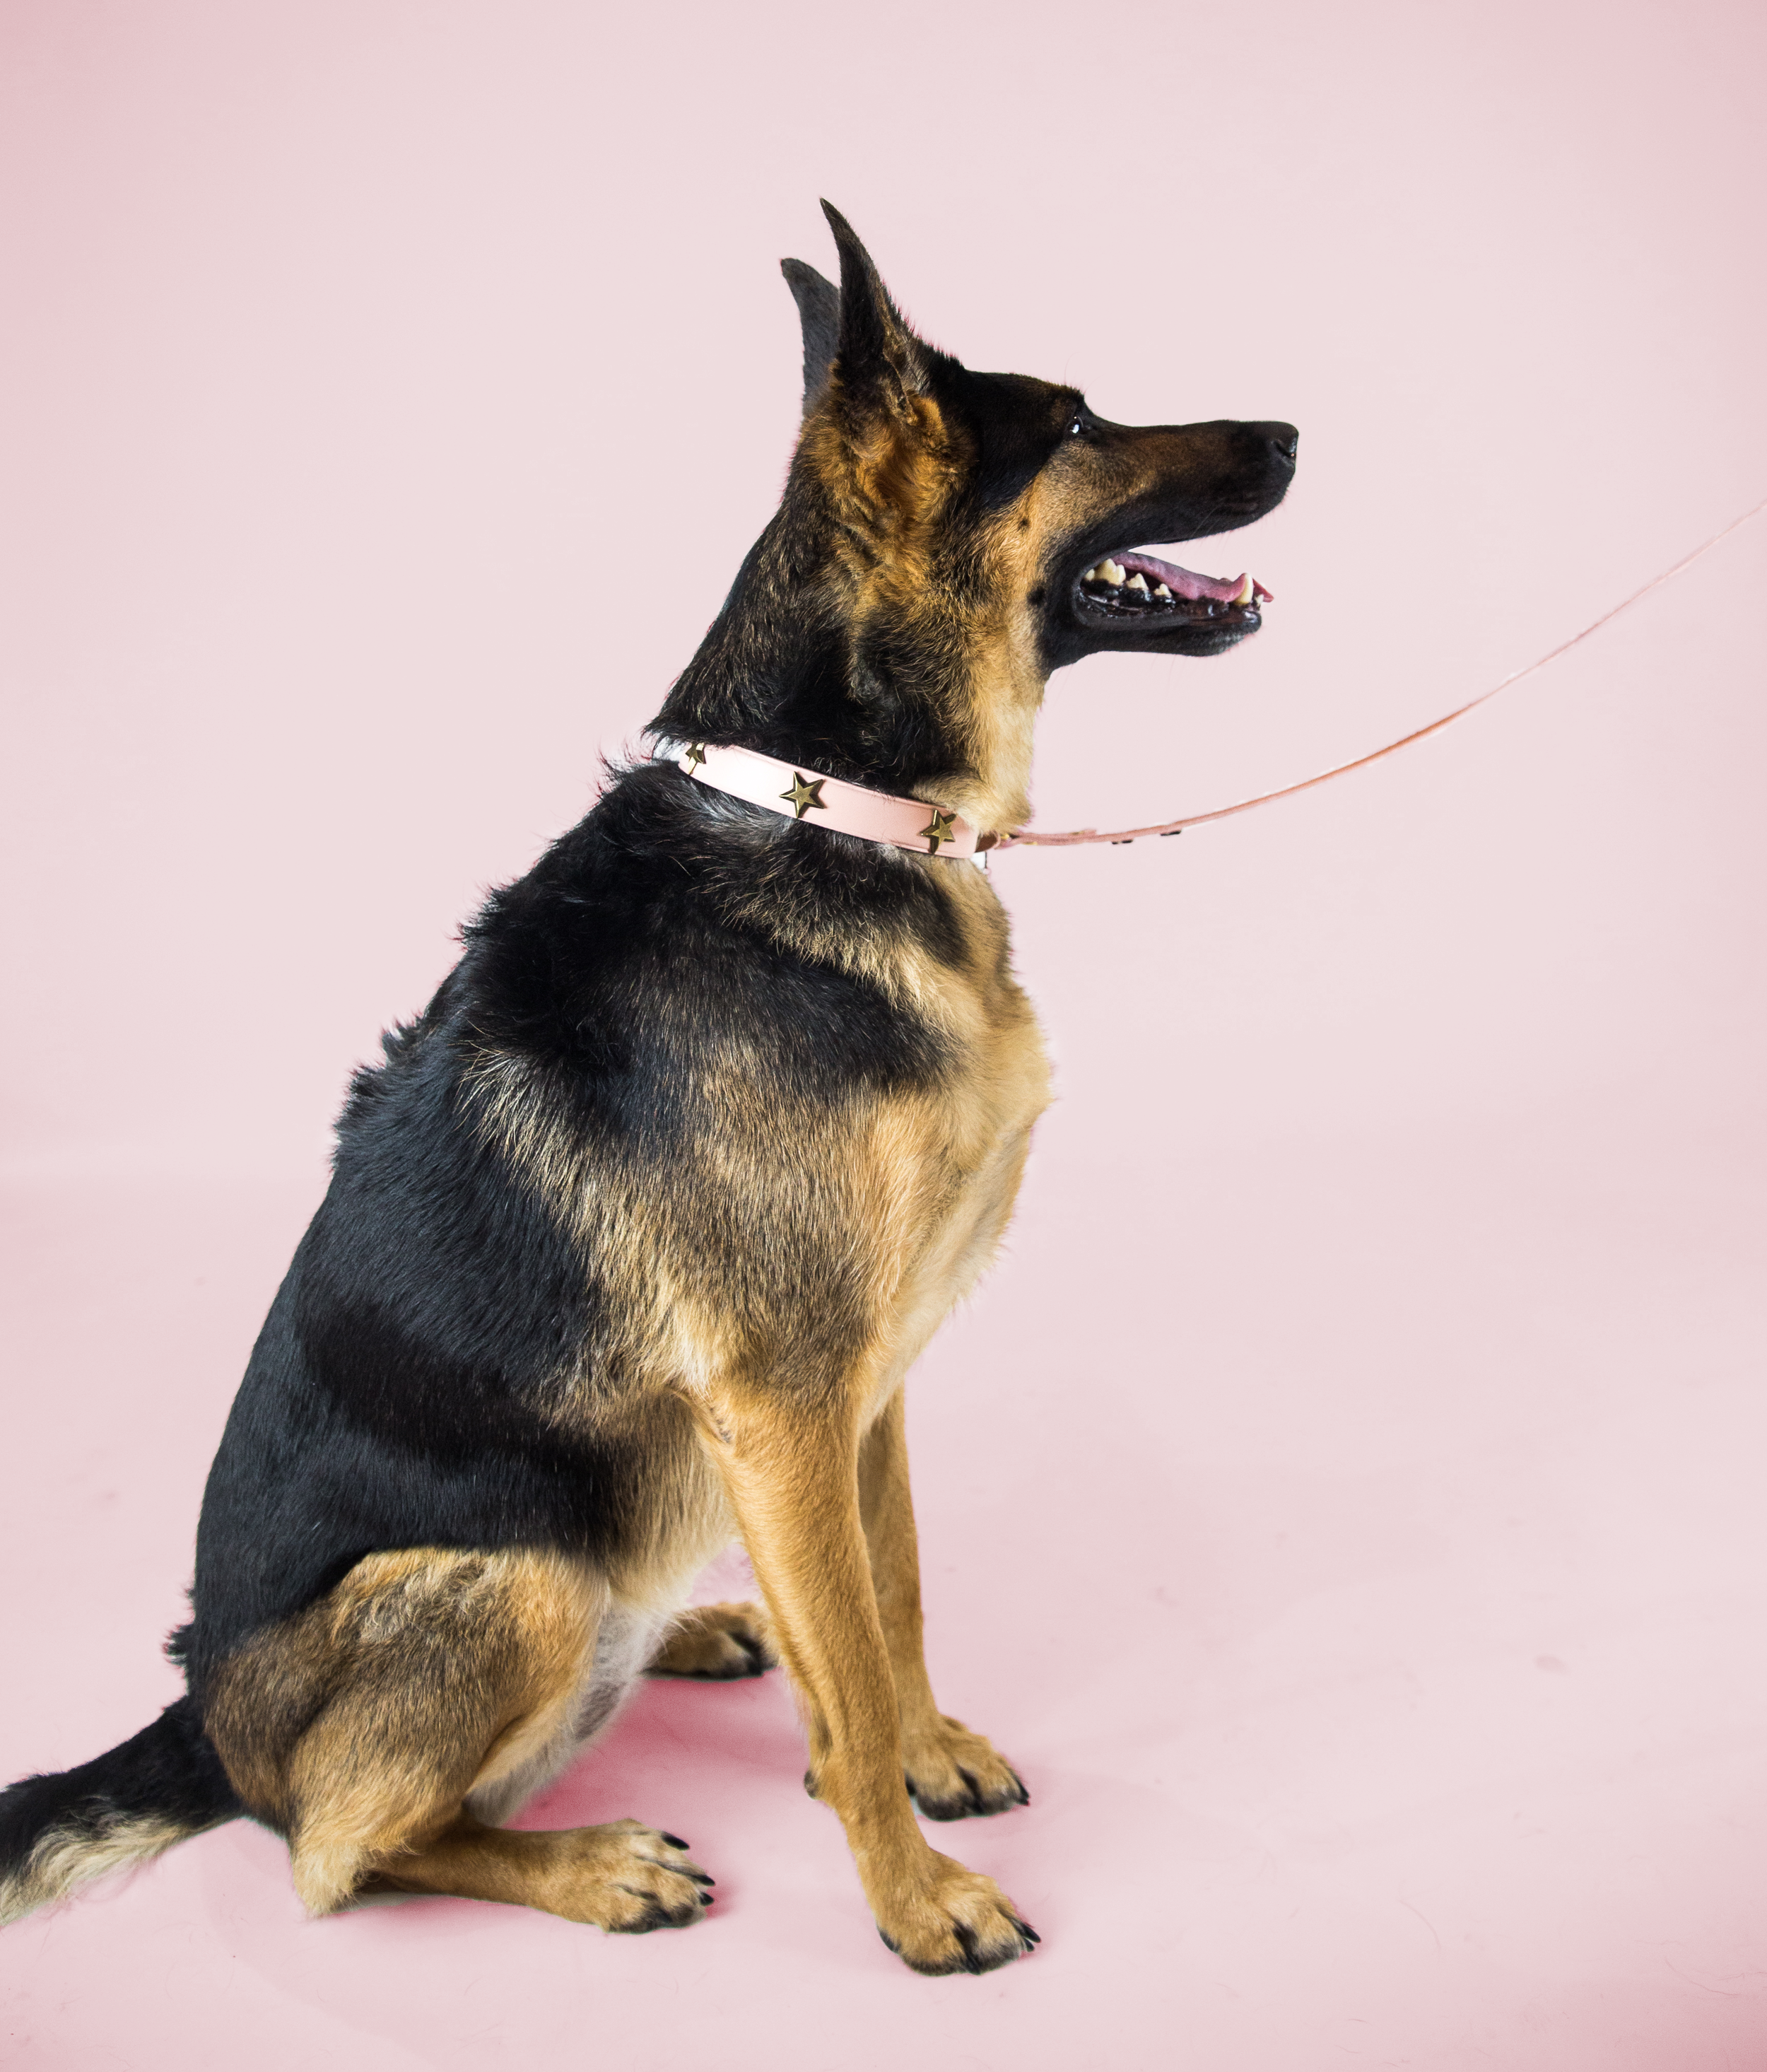 Sweet Maya - While Maya may be a big dog, she acts like a big puppy most of the time. She's often afraid of heights and can even get a little scared of small puppies at time. Talk about sweet.